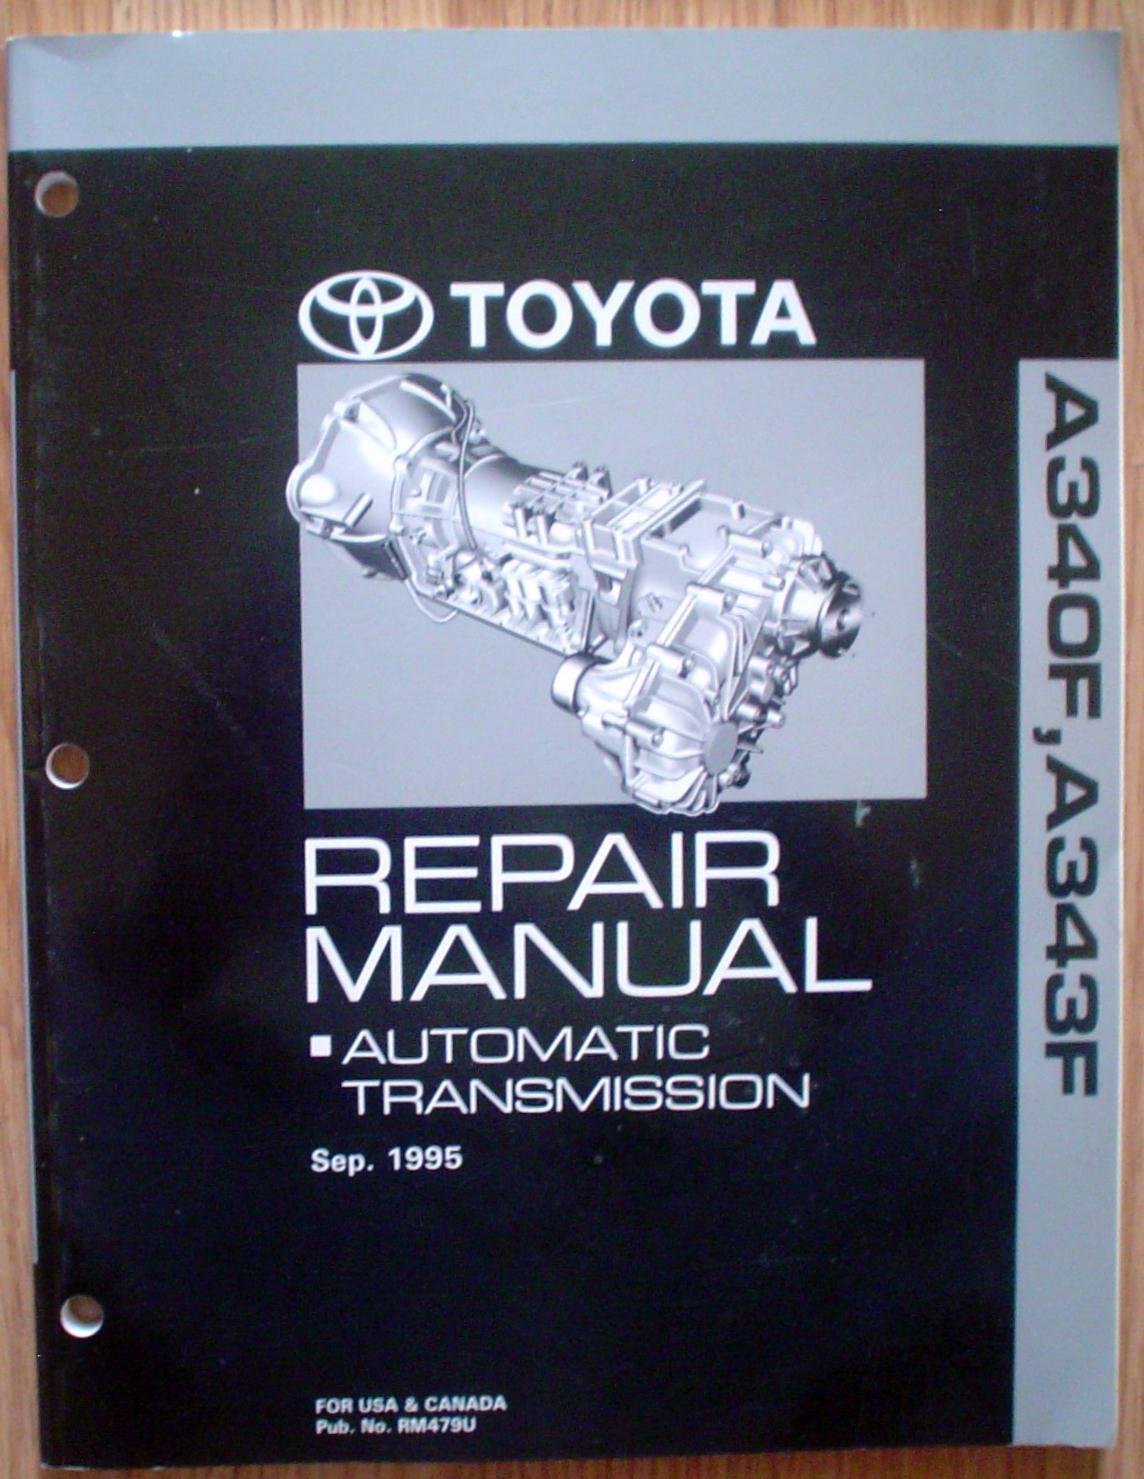 toyota a34of a343f repair manual automatic transmission sep 1995 rh amazon com Automatic Transmission Diagram Honda Automatic Transmission Repair Manual